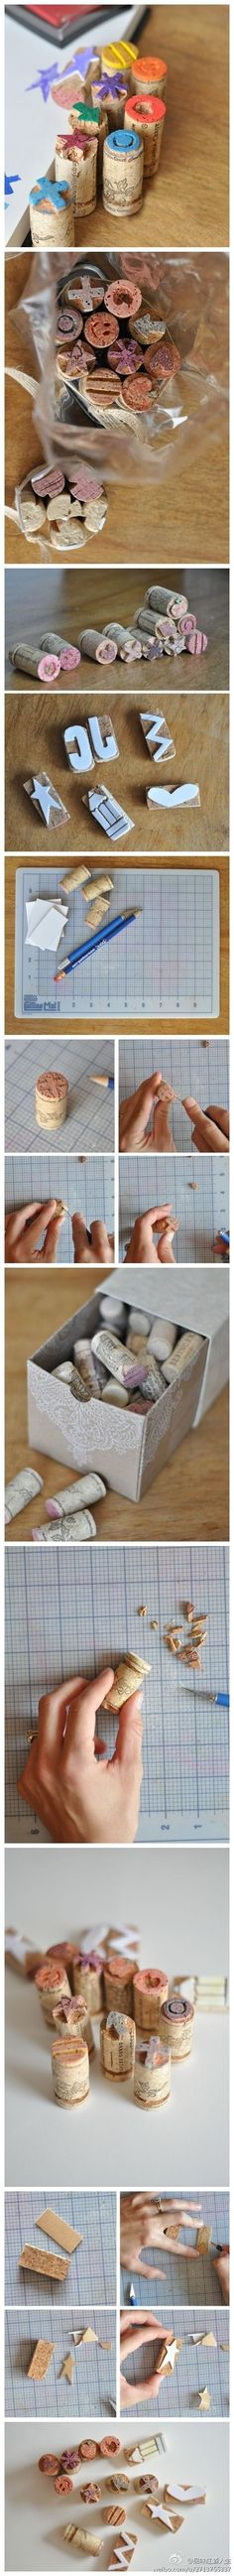 Awesome DIY Ideas and Tutorials Using Wine Corks 2019 Wine Cork Stamps. Kids Crafts, Craft Projects, Arts And Crafts, Paper Crafts, Stencil, Cork Art, Handmade Stamps, Wine Cork Crafts, Tampons